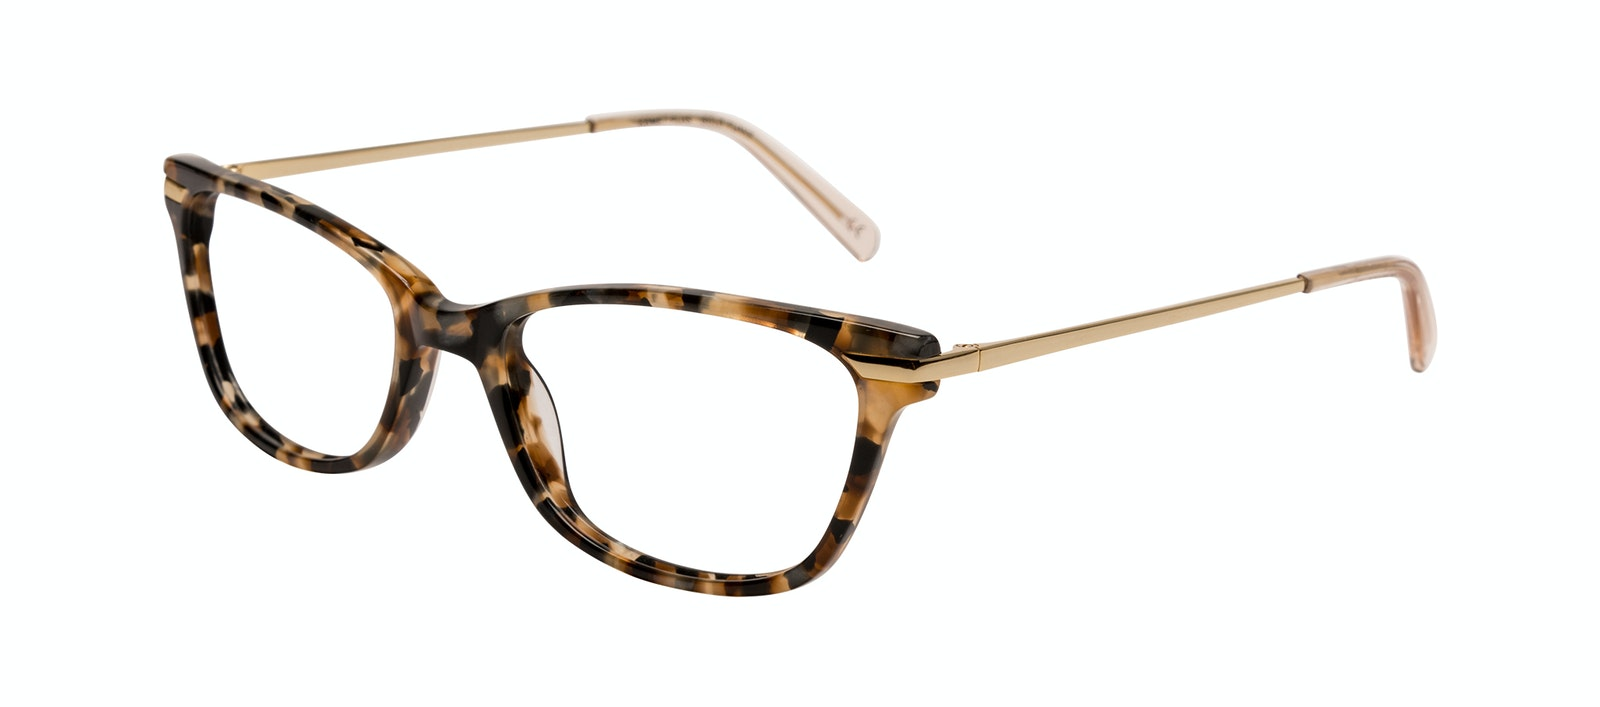 Affordable Fashion Glasses Rectangle Eyeglasses Women Comet Plus Gold Flake Tilt